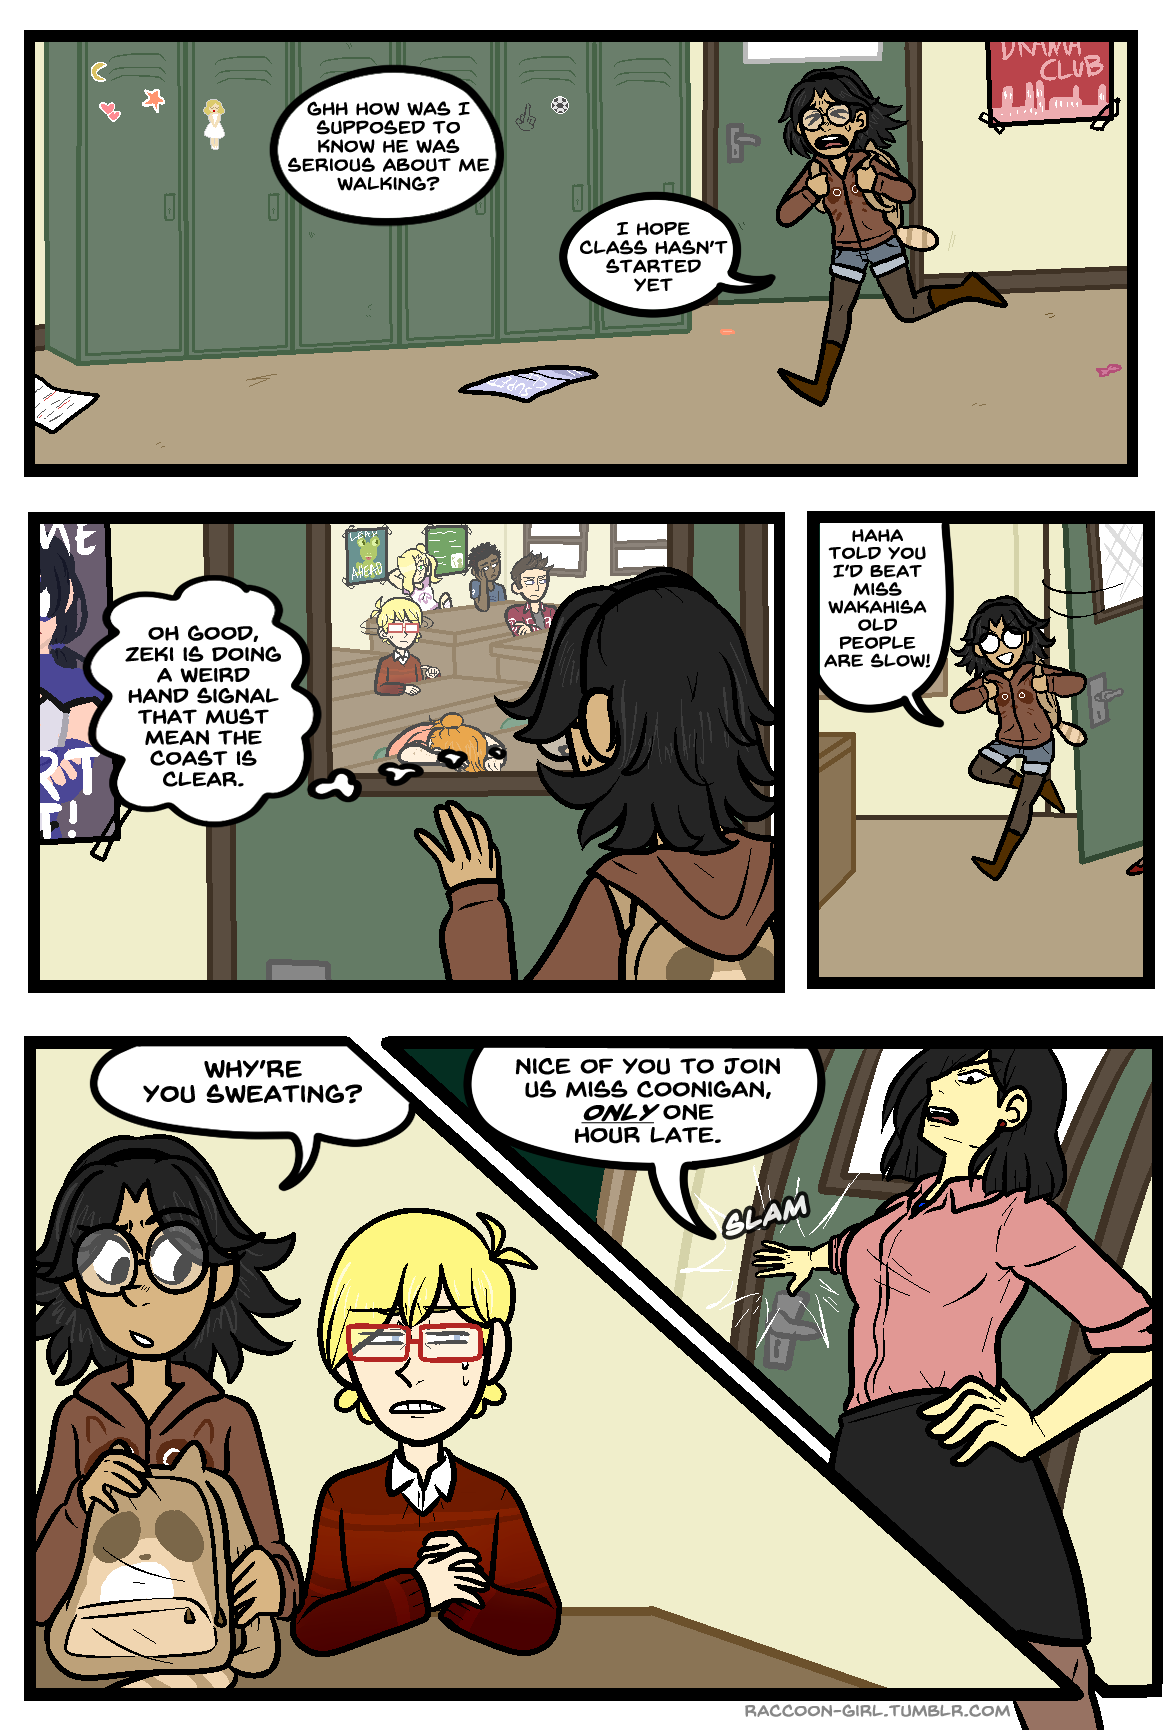 raccoongirl-page54